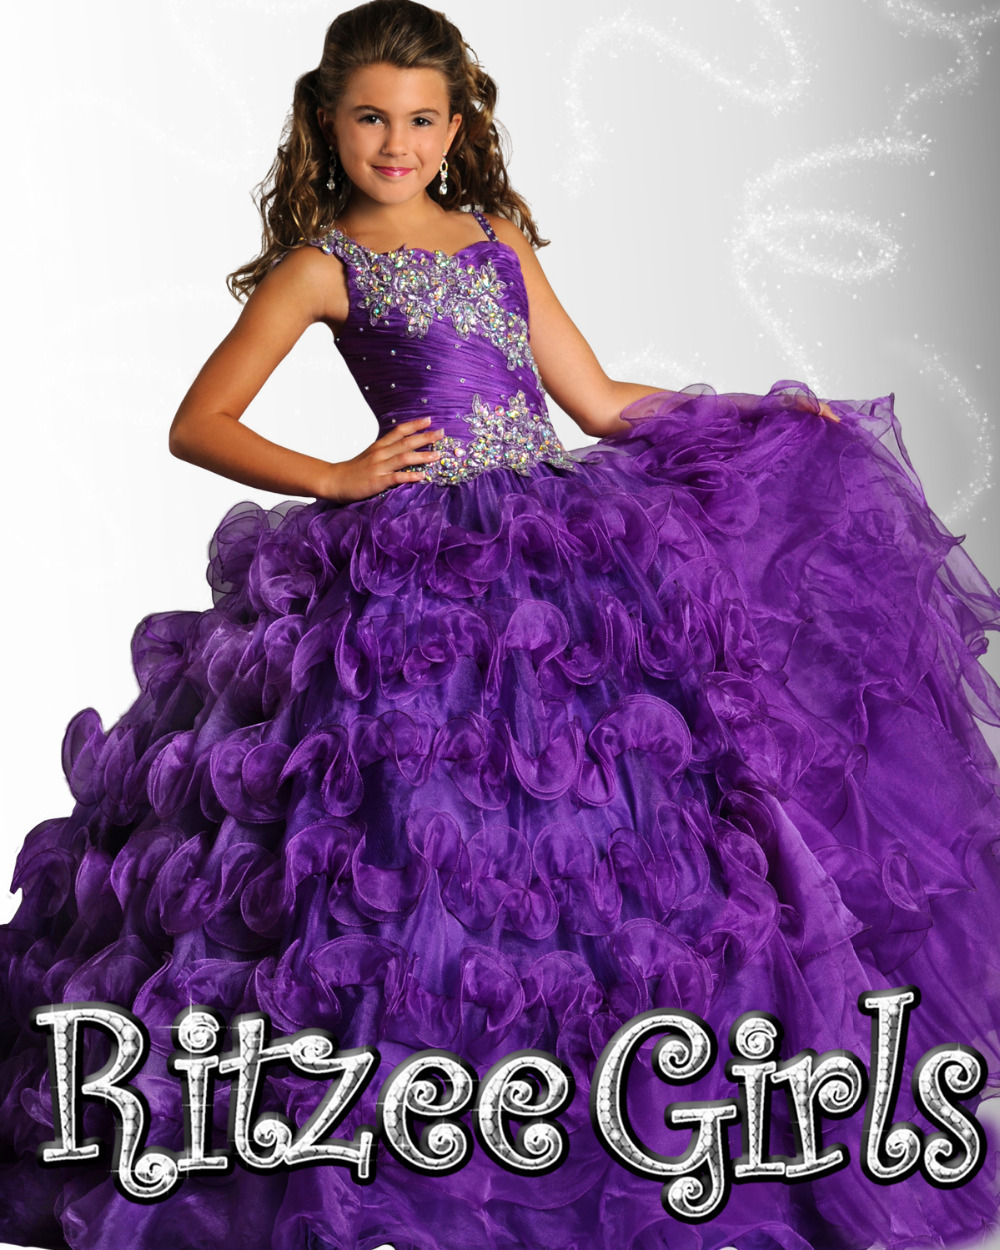 Top Quality Girls Size 7 Pageant Dress Children Dress Girls Dresses Pageant For Party 2016